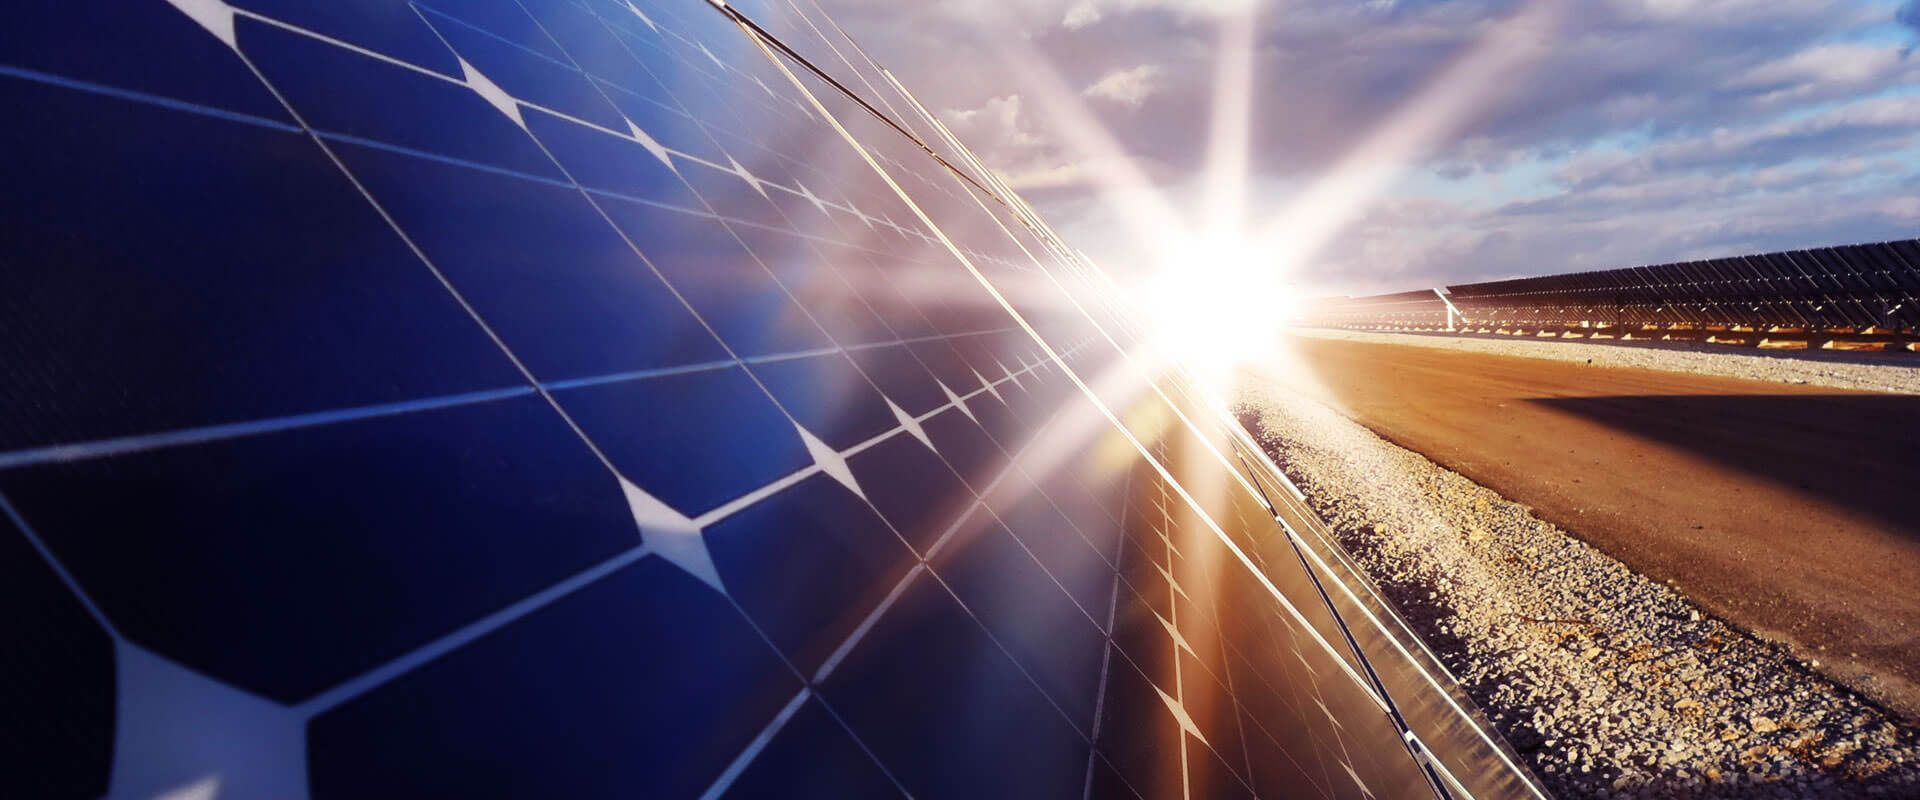 Ausuntech Energy is a leading company specializes in